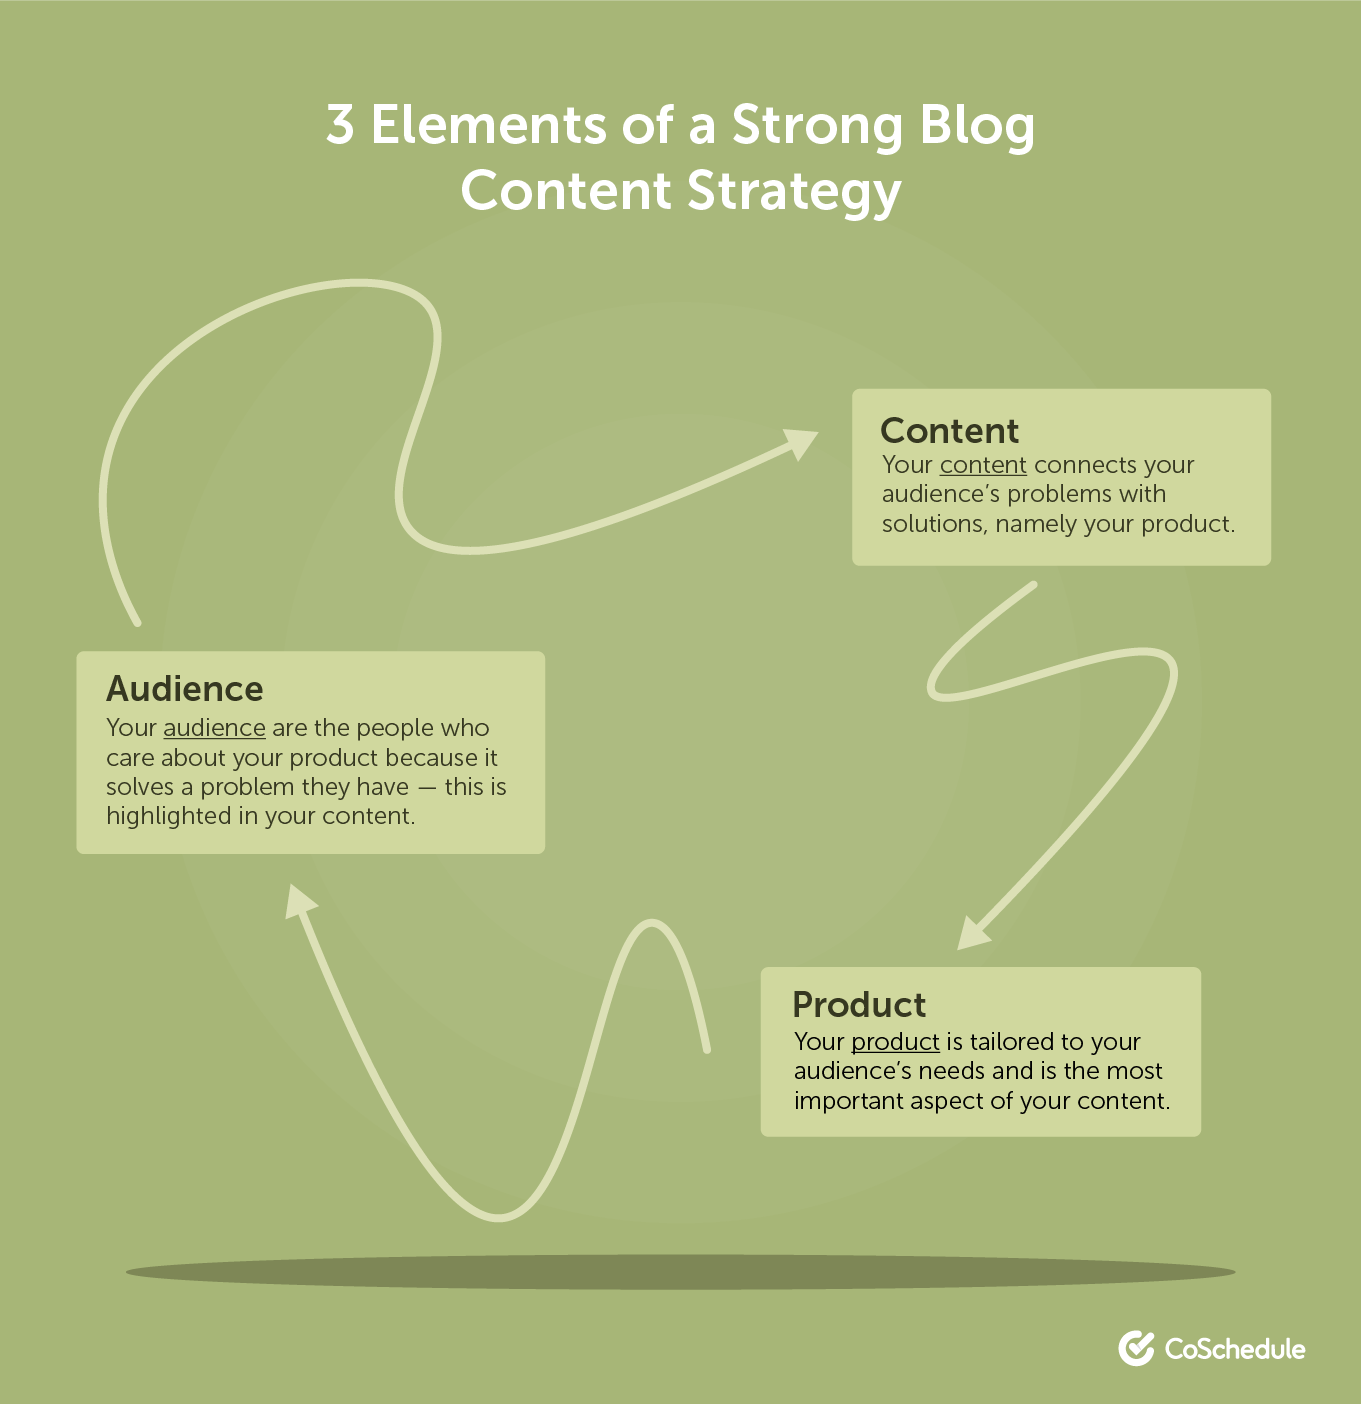 3 elements of a strong blog content strategy